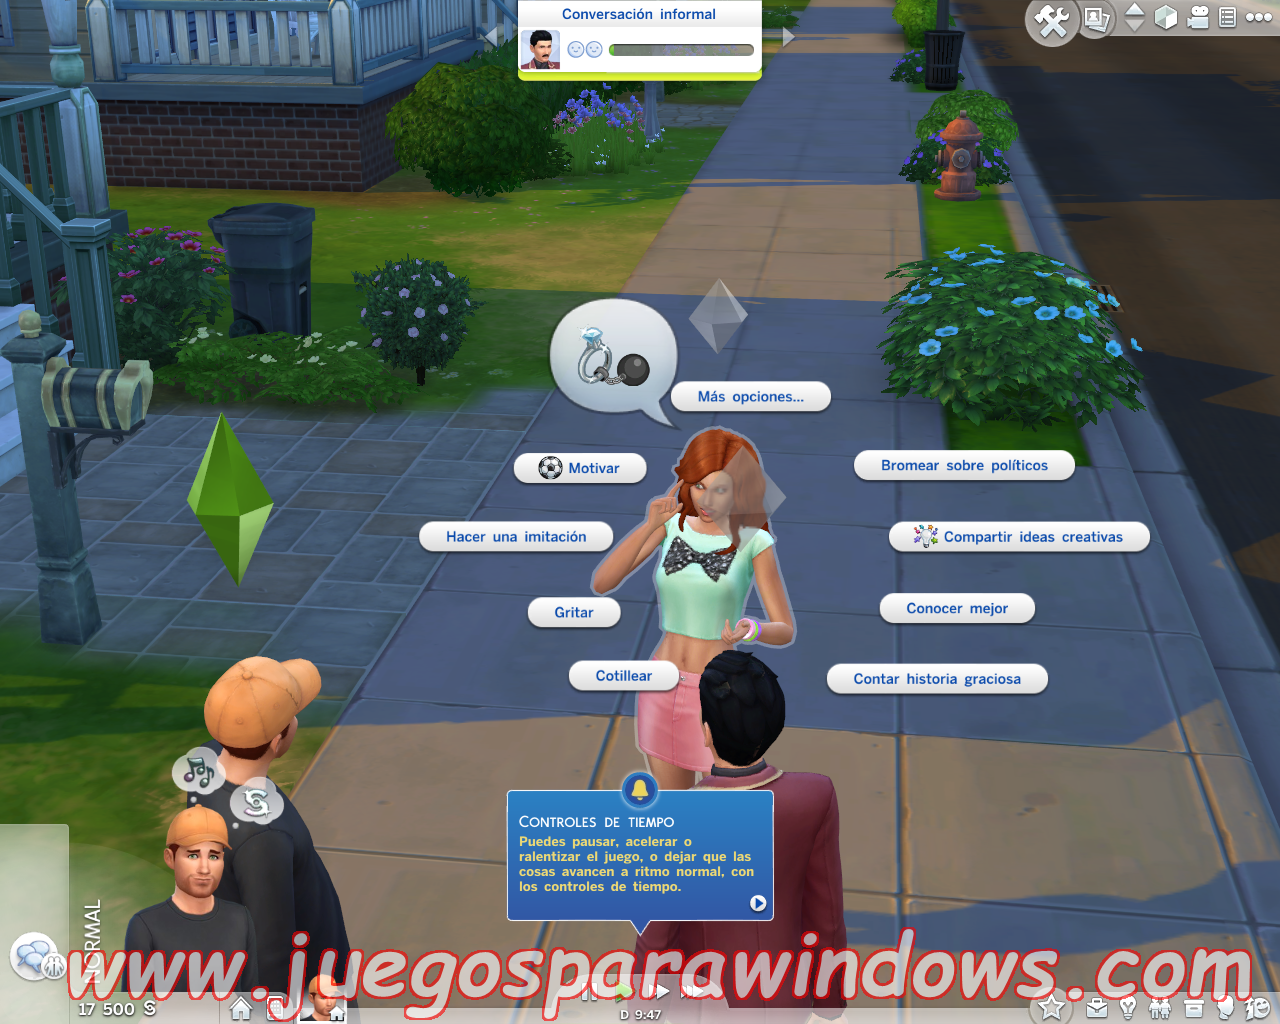 Los Sims 4 Digital Deluxe Edition ESPAÑOL PC Full + Update v1.4.83.1010 Incl DLC (RELOADED) 21